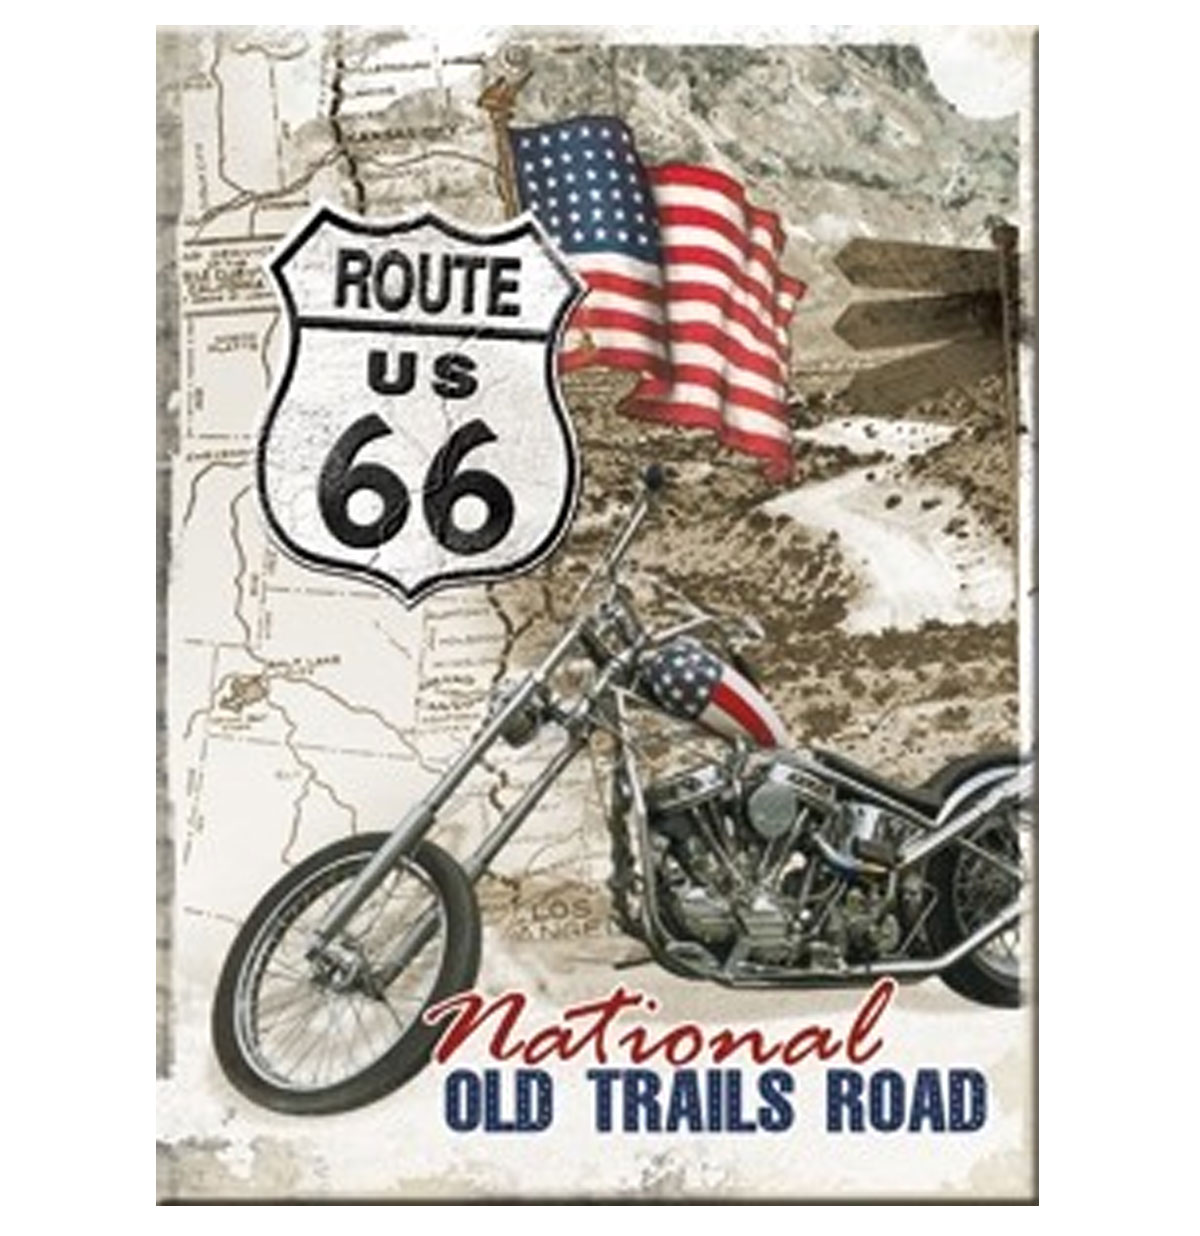 Route 66 National Old Trails Road Magneet